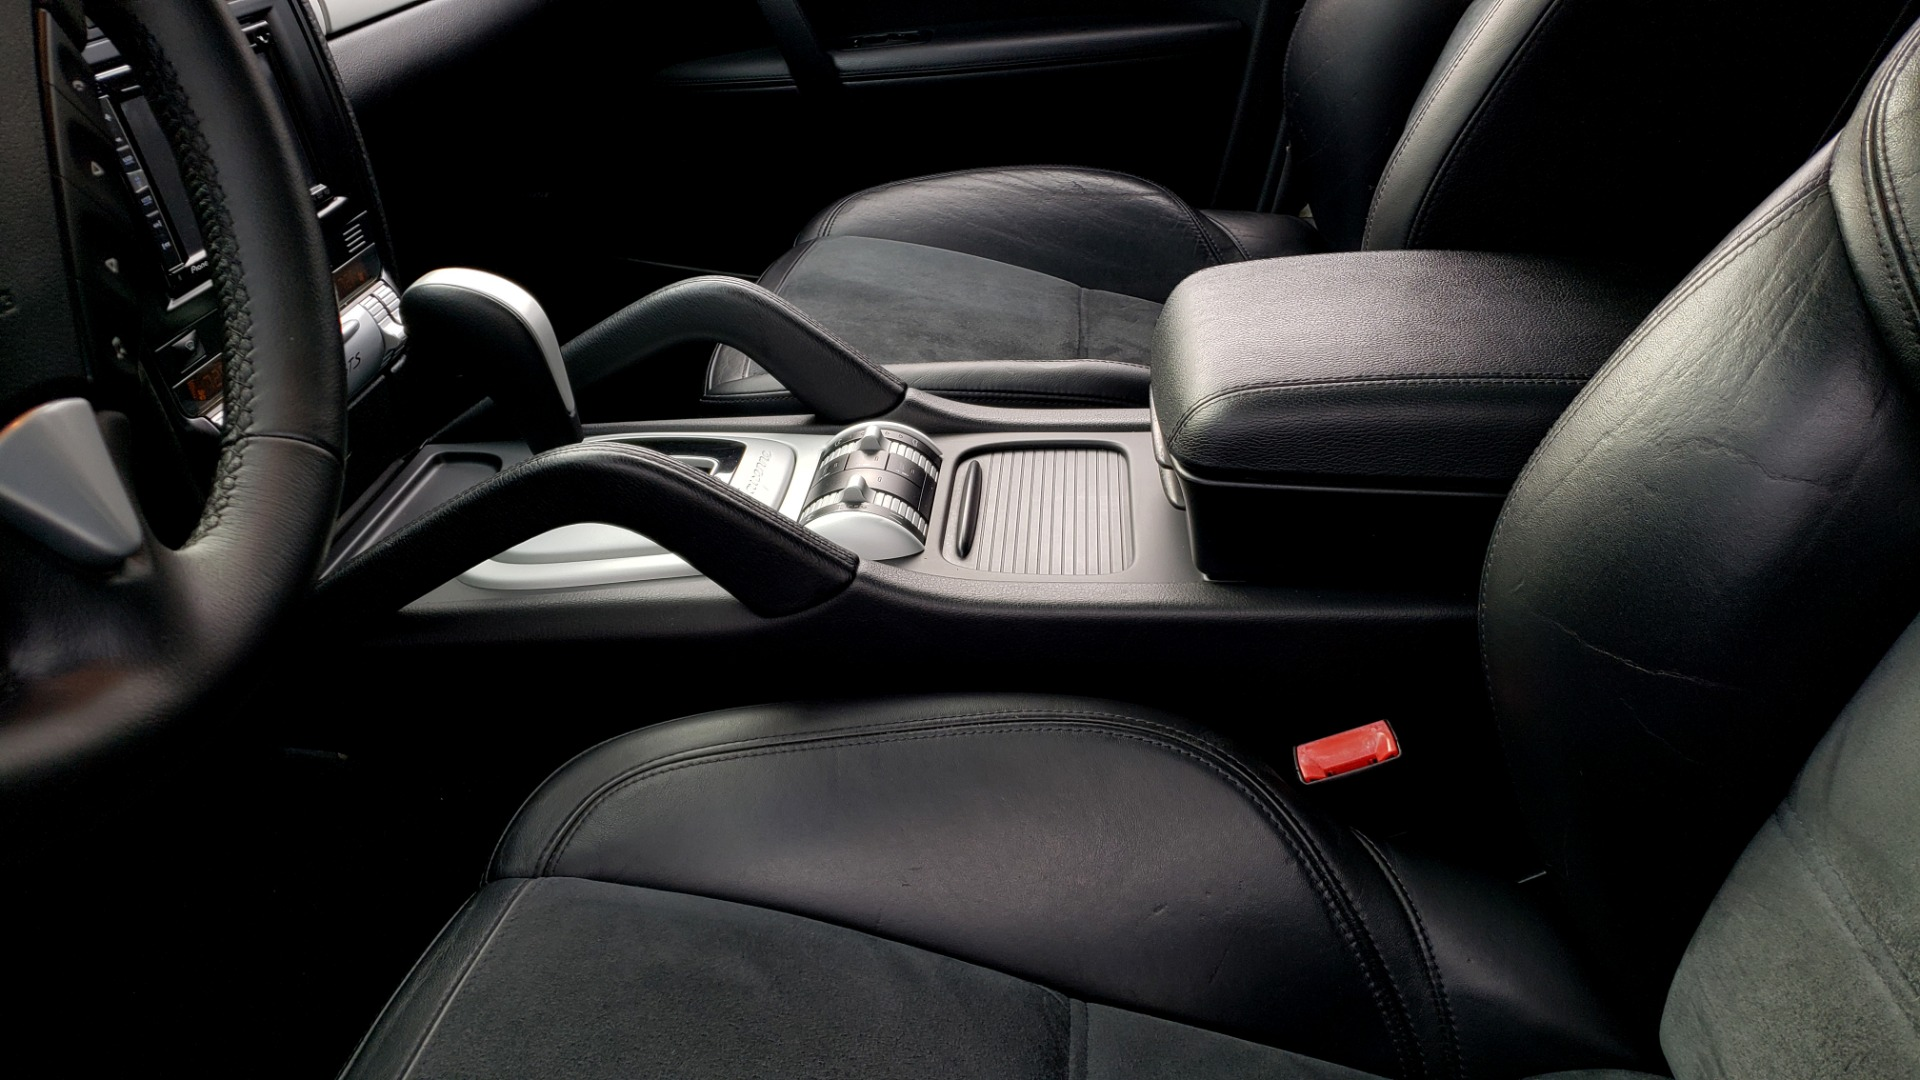 Used 2008 Porsche CAYENNE GTS TIPTRONIC / NAV / SUNROOF / REARVIEW / BOSE for sale Sold at Formula Imports in Charlotte NC 28227 75